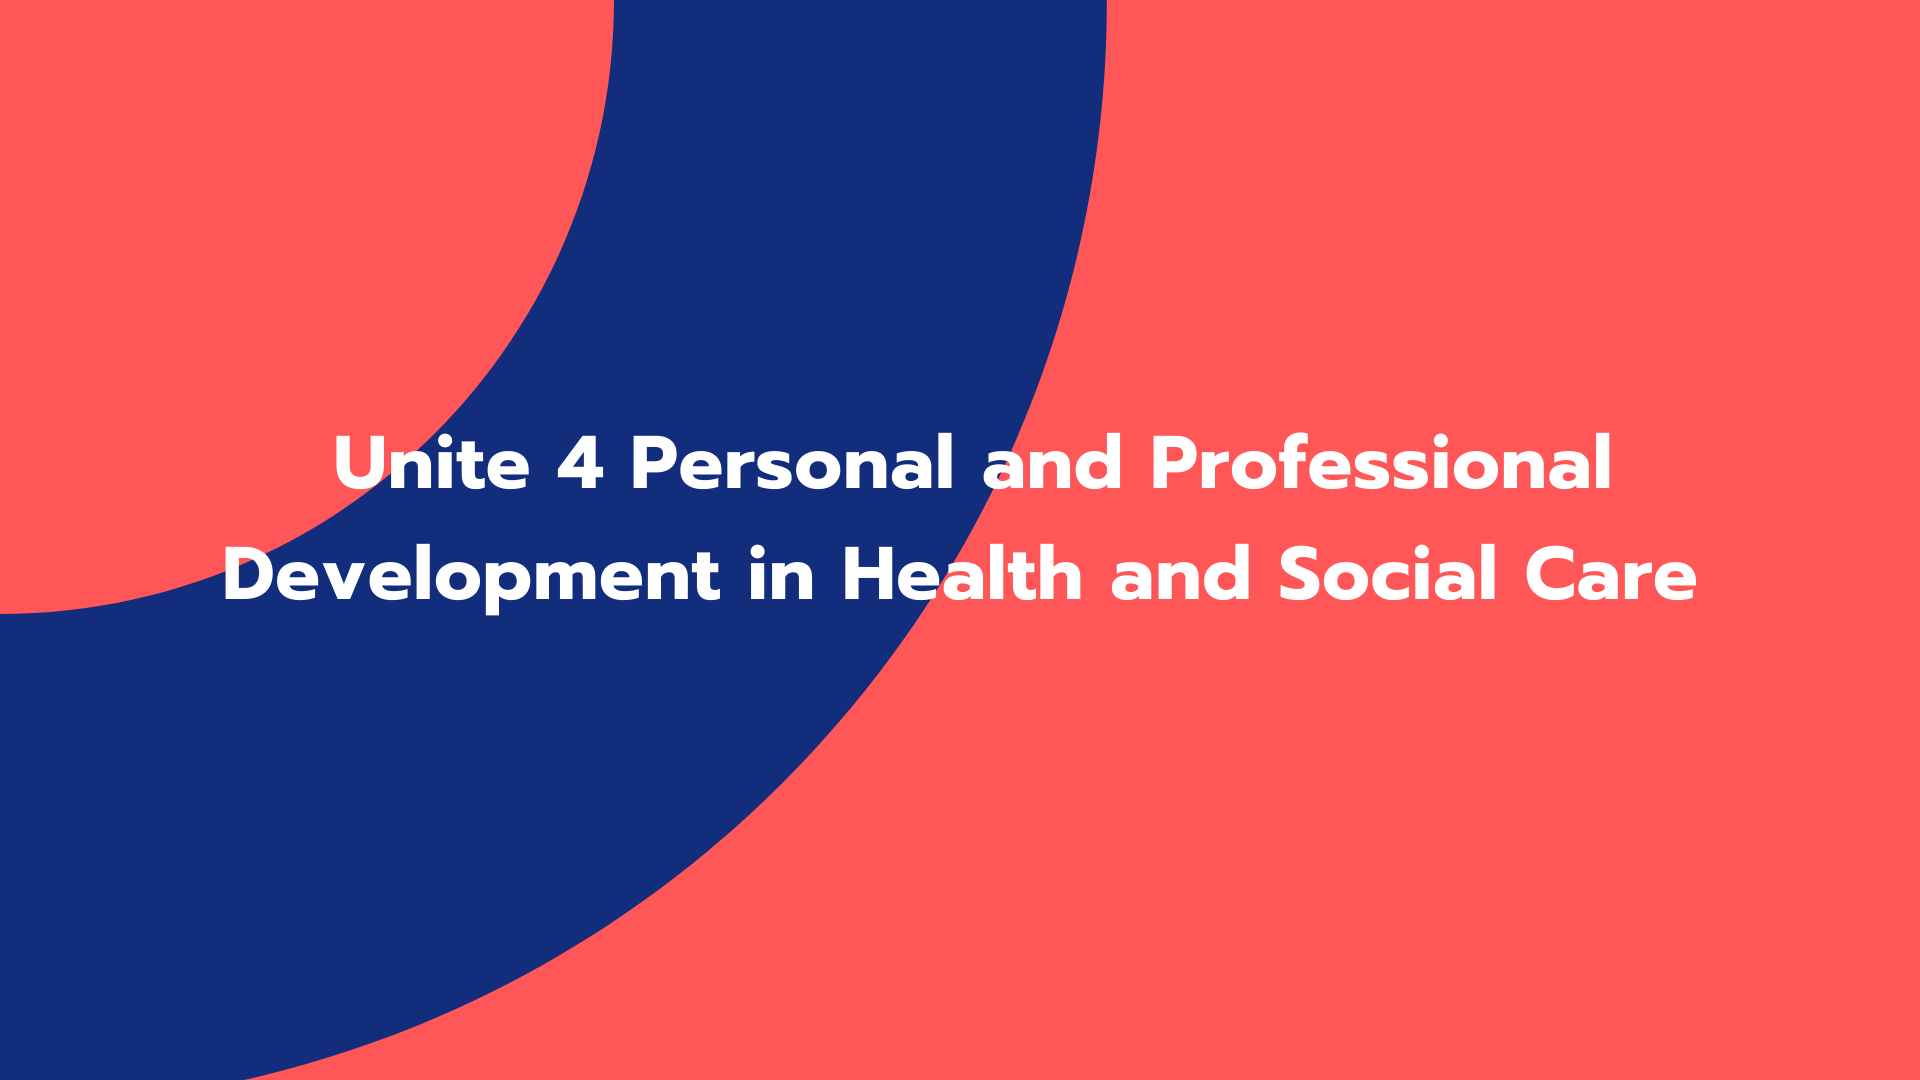 Unite 4 Personal and Professional Development in Health and Social Care